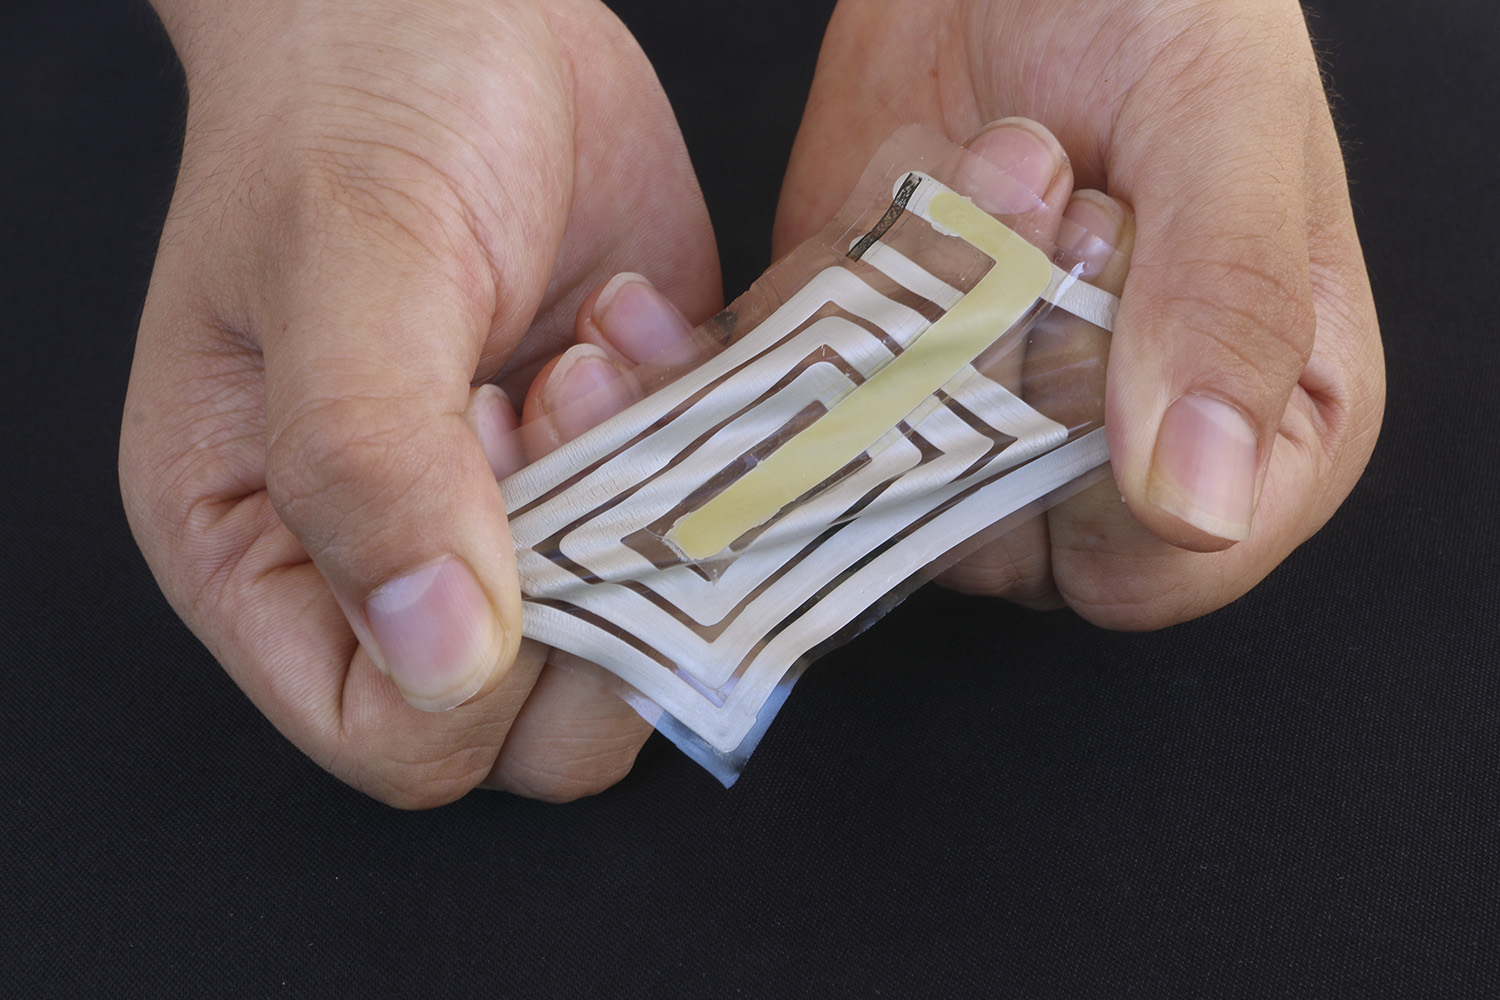 Wireless sensors that stick to the skin to track our health